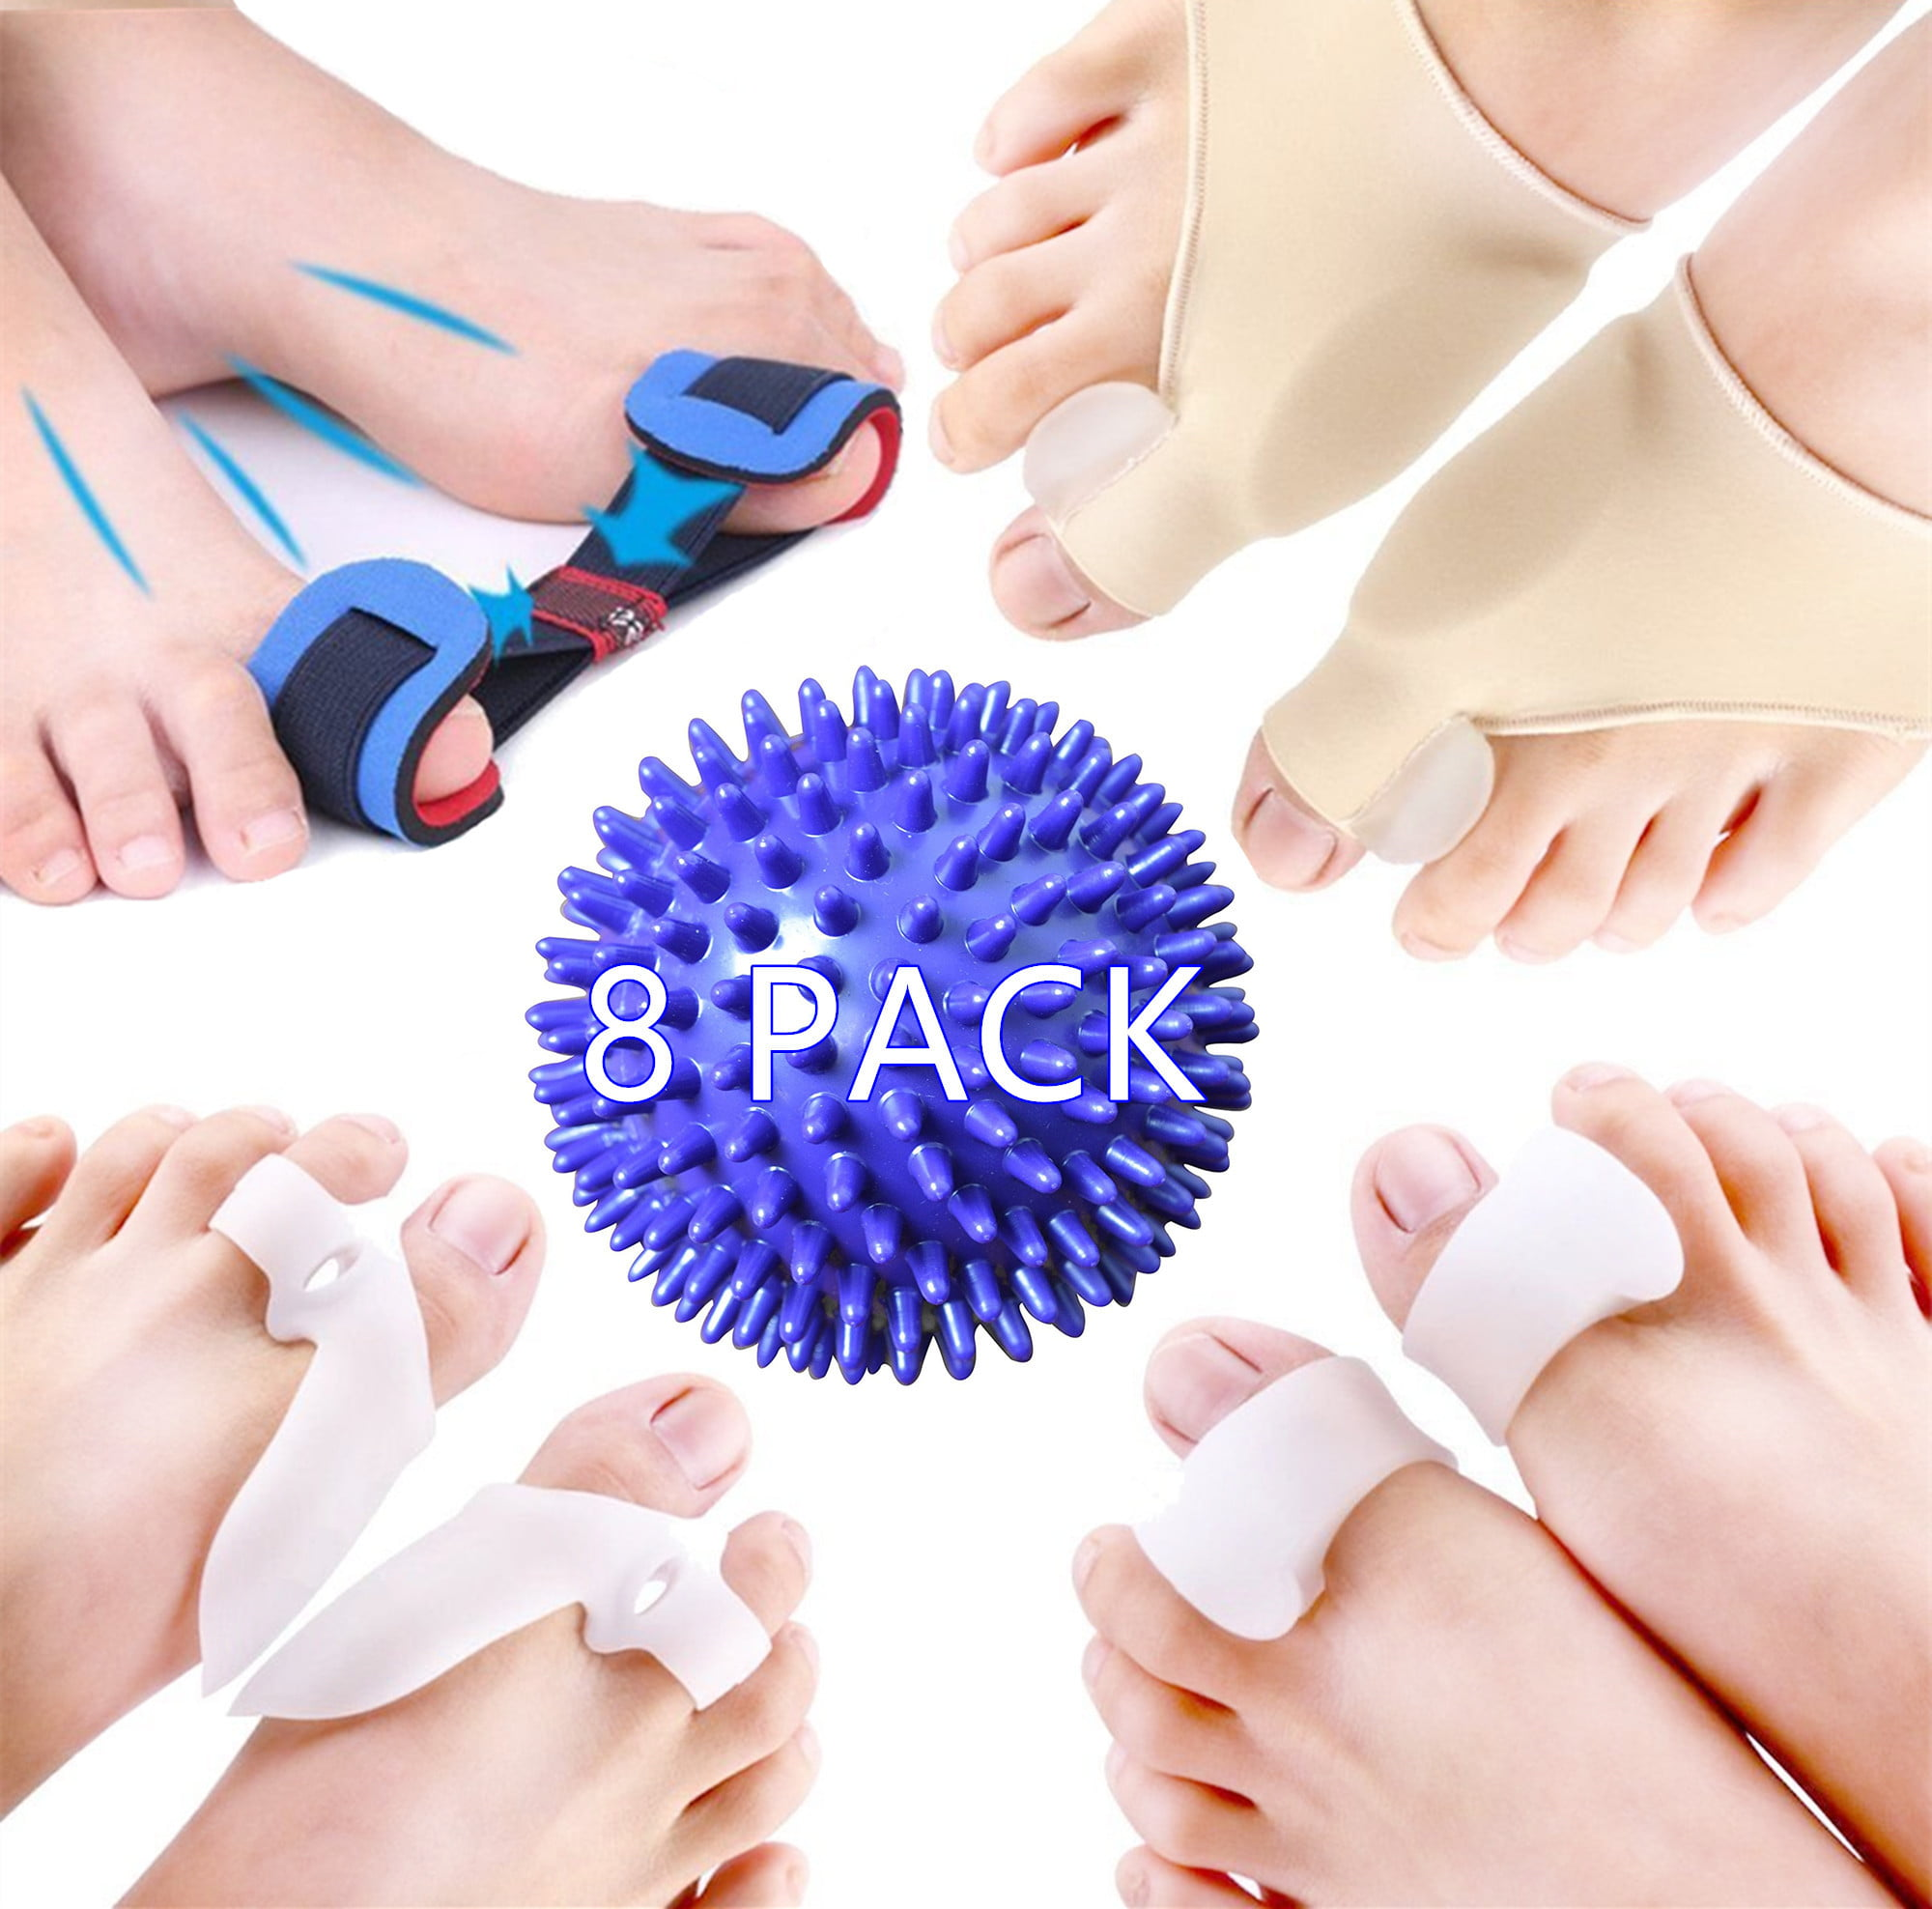 Bunion Corrector & Bunion Relief Protector Sleeves Kit Treat Pain in Hallux Valgus, Big Toe Joint, Hammer Toe, Toe Separators Spacers... by